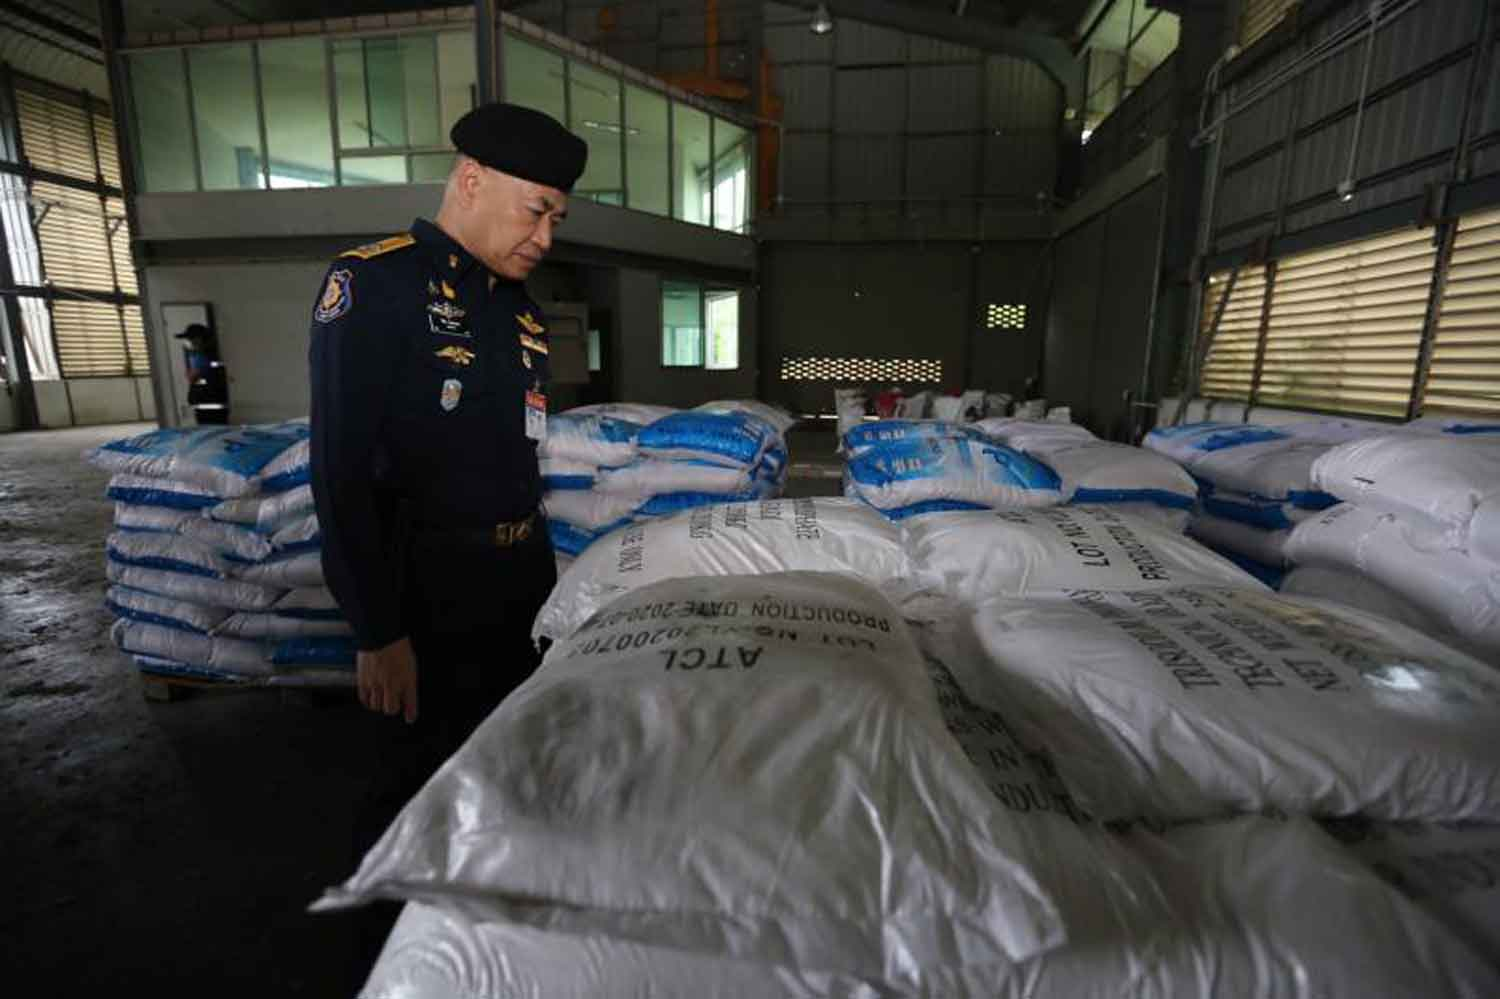 Wichai Chaimongkol, secretary-general of the Office of the Narcotics Control Board, inspects what turned out to be trisodium phosphate, in Chachoengsao province last month. (Police photo)